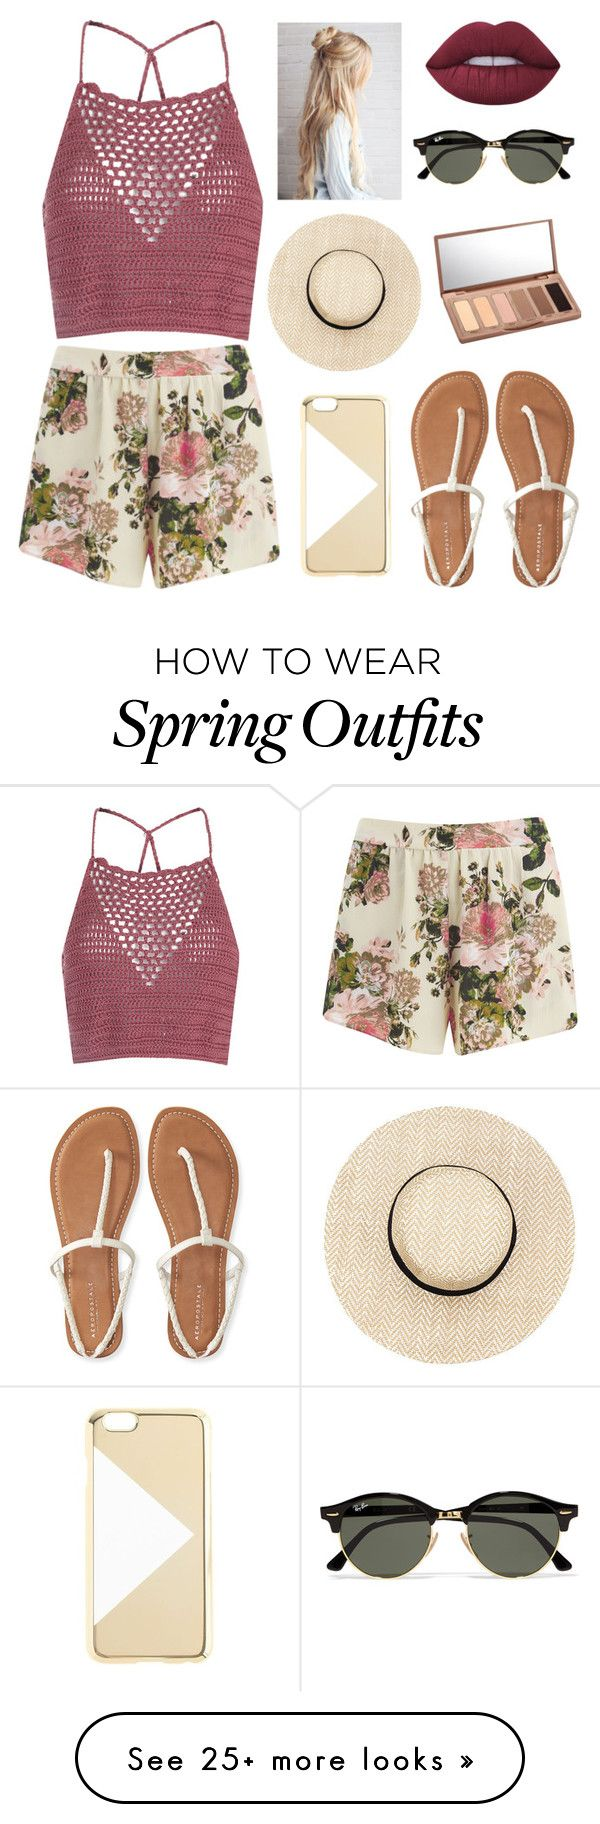 """Dream Outfit #43"" by luv2act68 on Polyvore featuring VILA, Glamorous, Lime Crime, Ray-Ban, Urban Decay, J.Crew and Aéropostale"